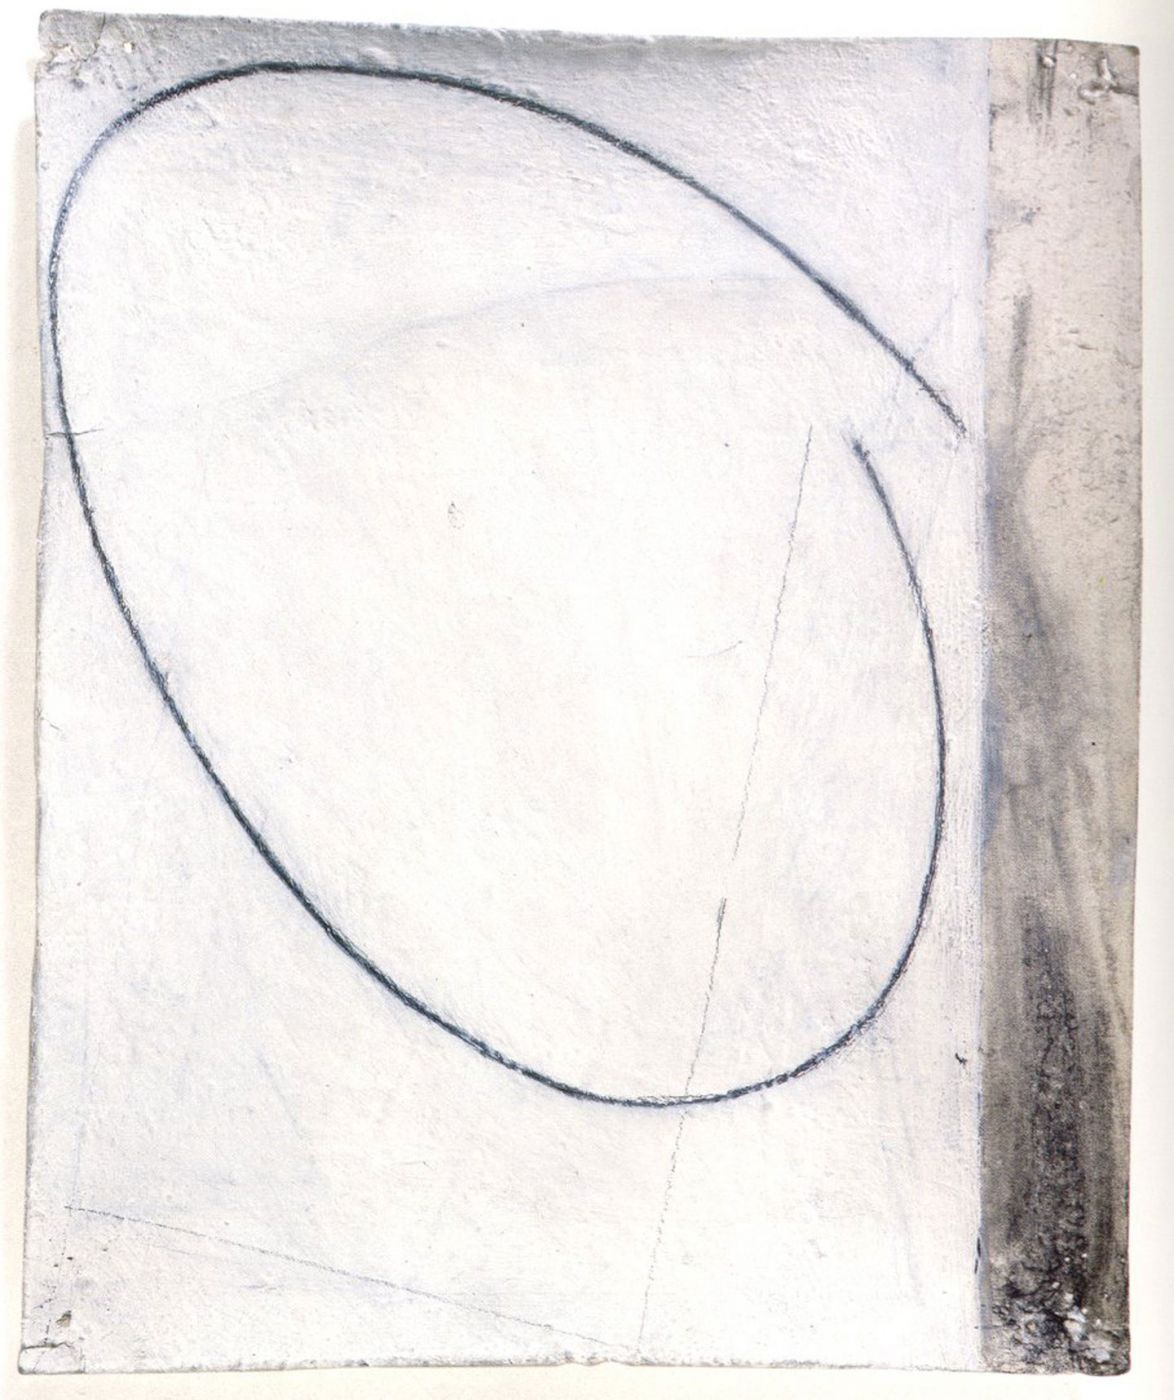 Eve Aschheim: Paintings and Drawings